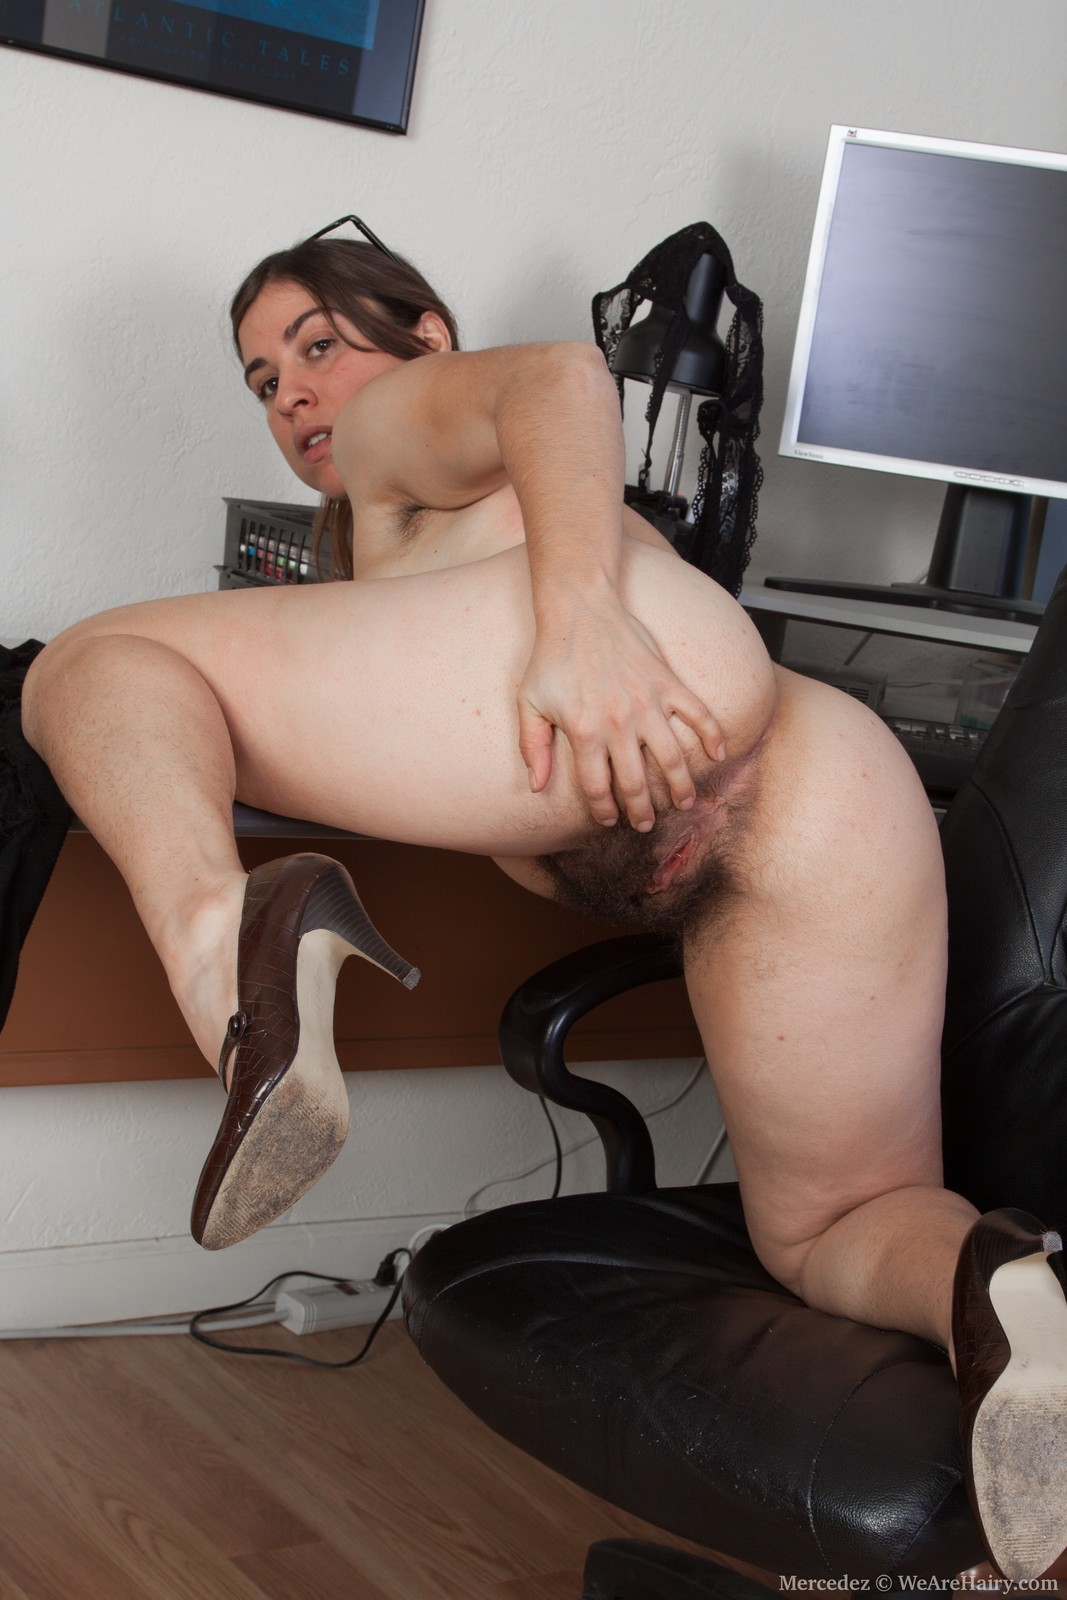 Girls fucking leather chairs